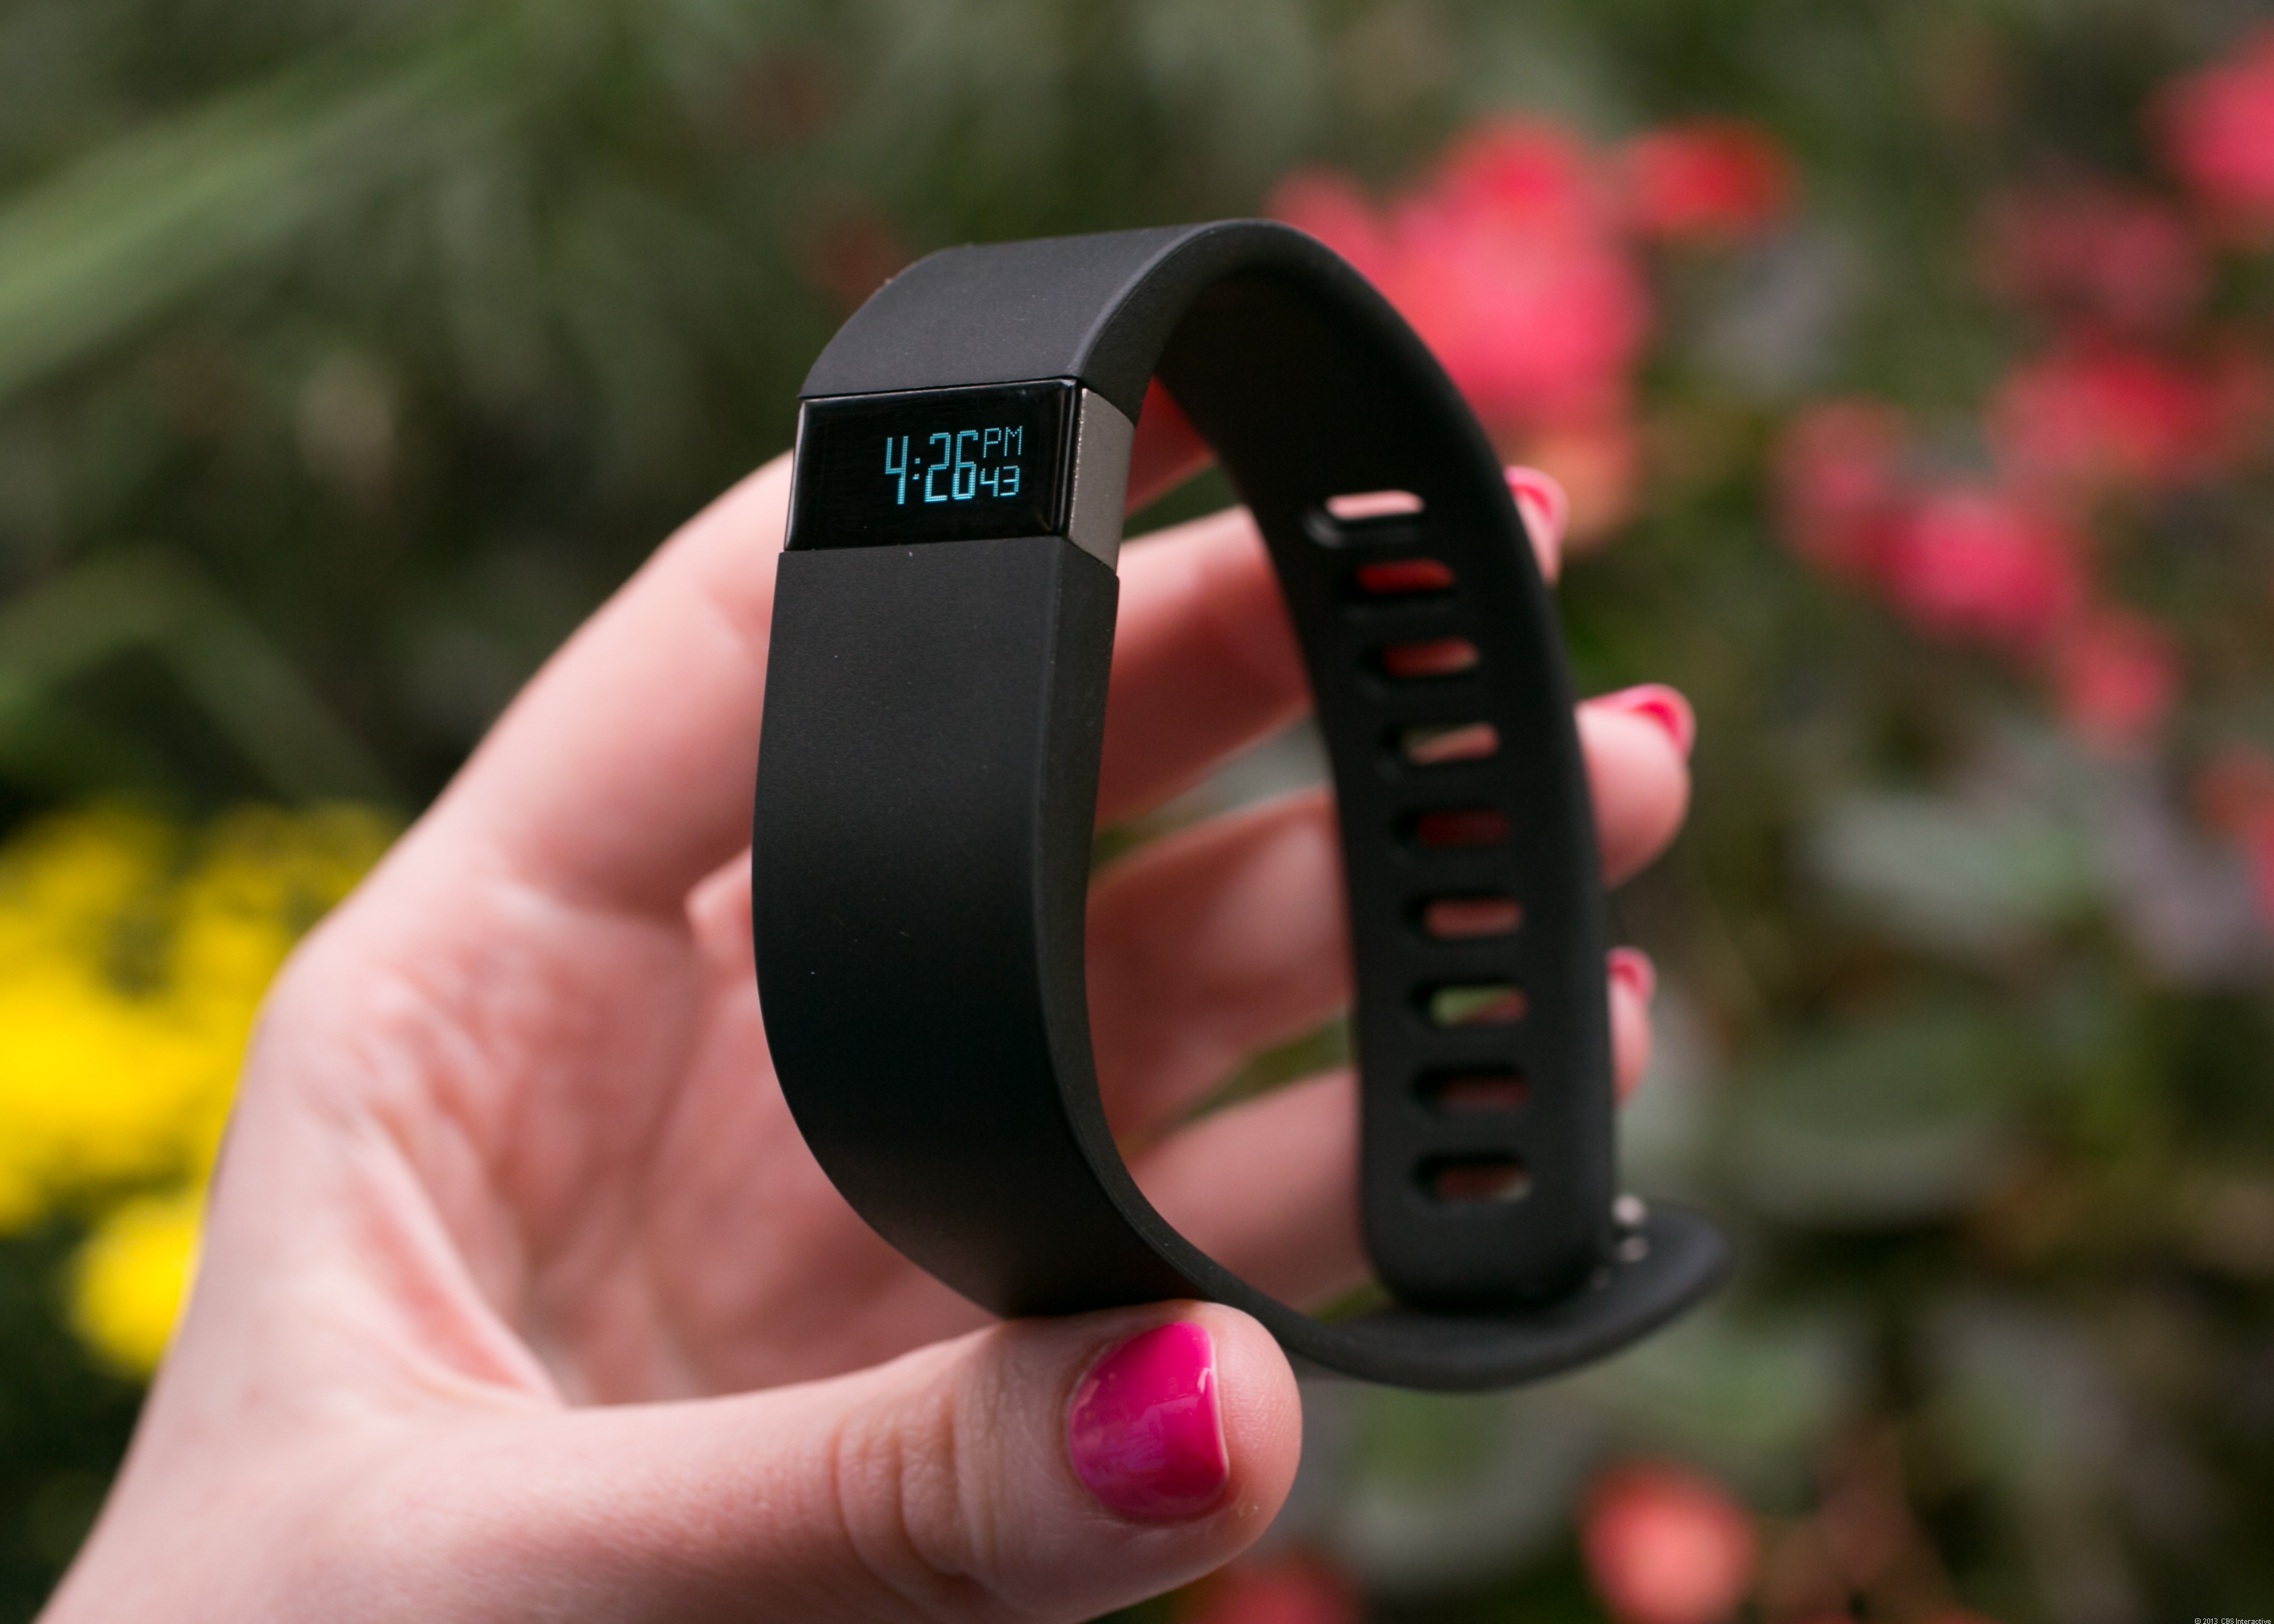 Fitbit's new Force tracker is one of the best fitness gadgets we've seen and sure to make a great stocking-stuffer for you or someone you care about.